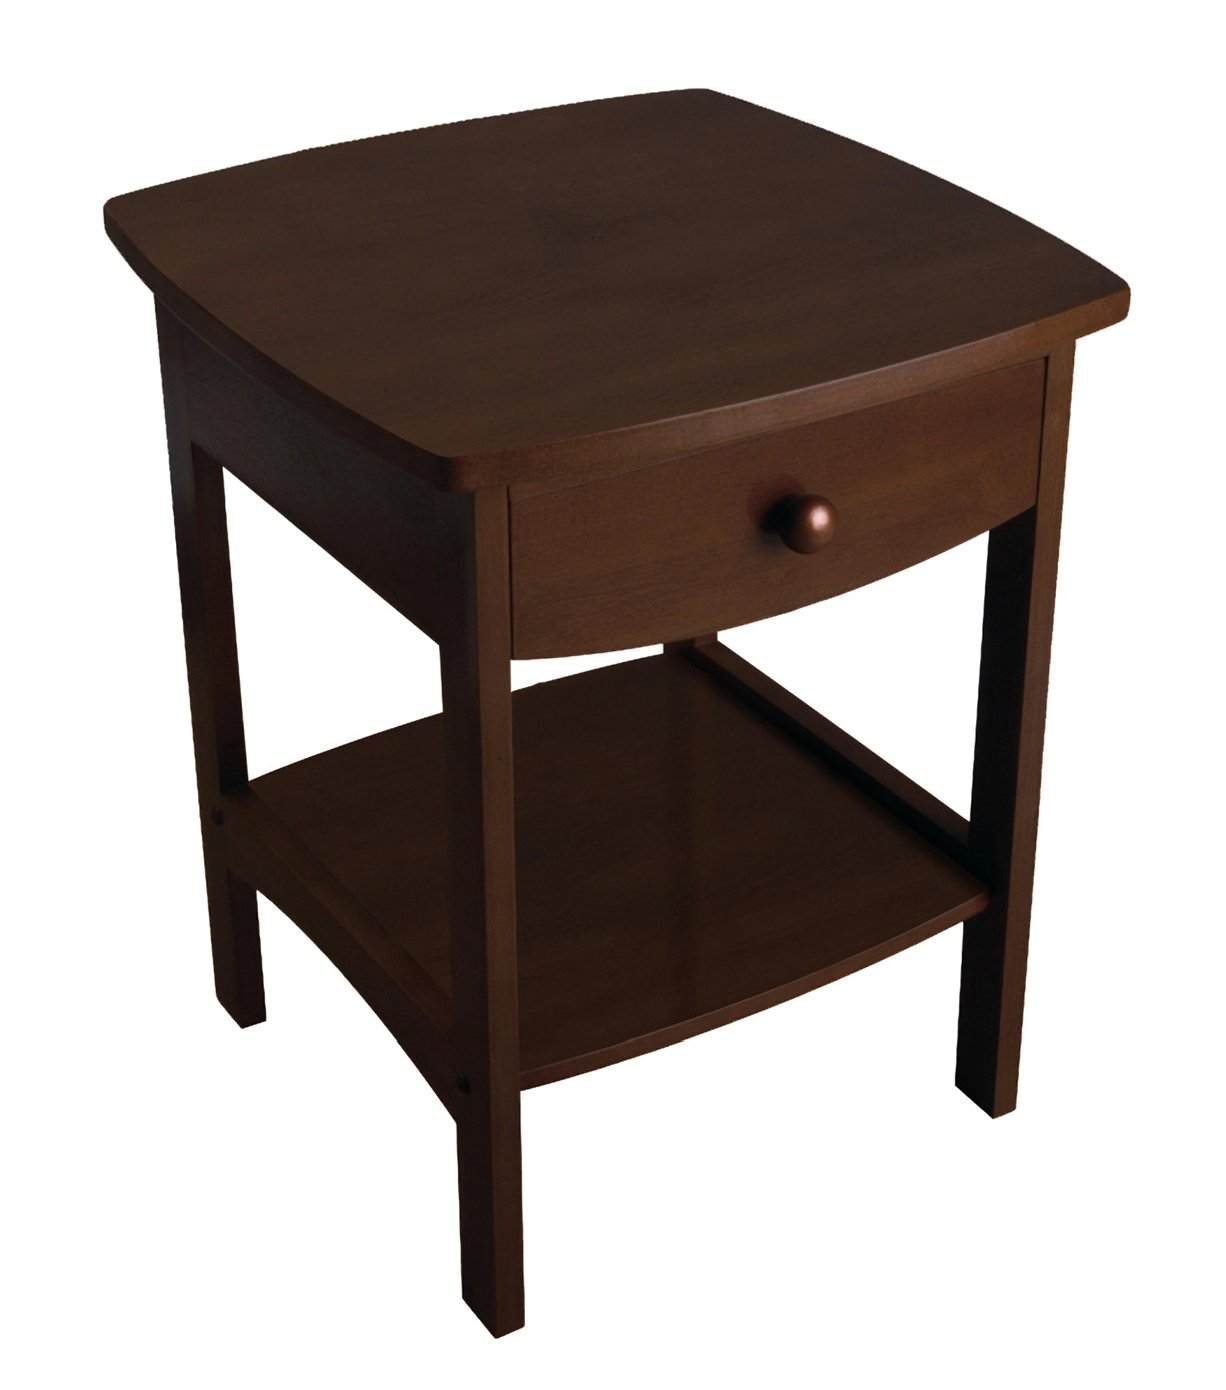 winsome wood claire accent table walnut kitchen narrow white dining pottery barn bench computer chair target metal end with drawer cotton tablecloths round glass top tall lamps